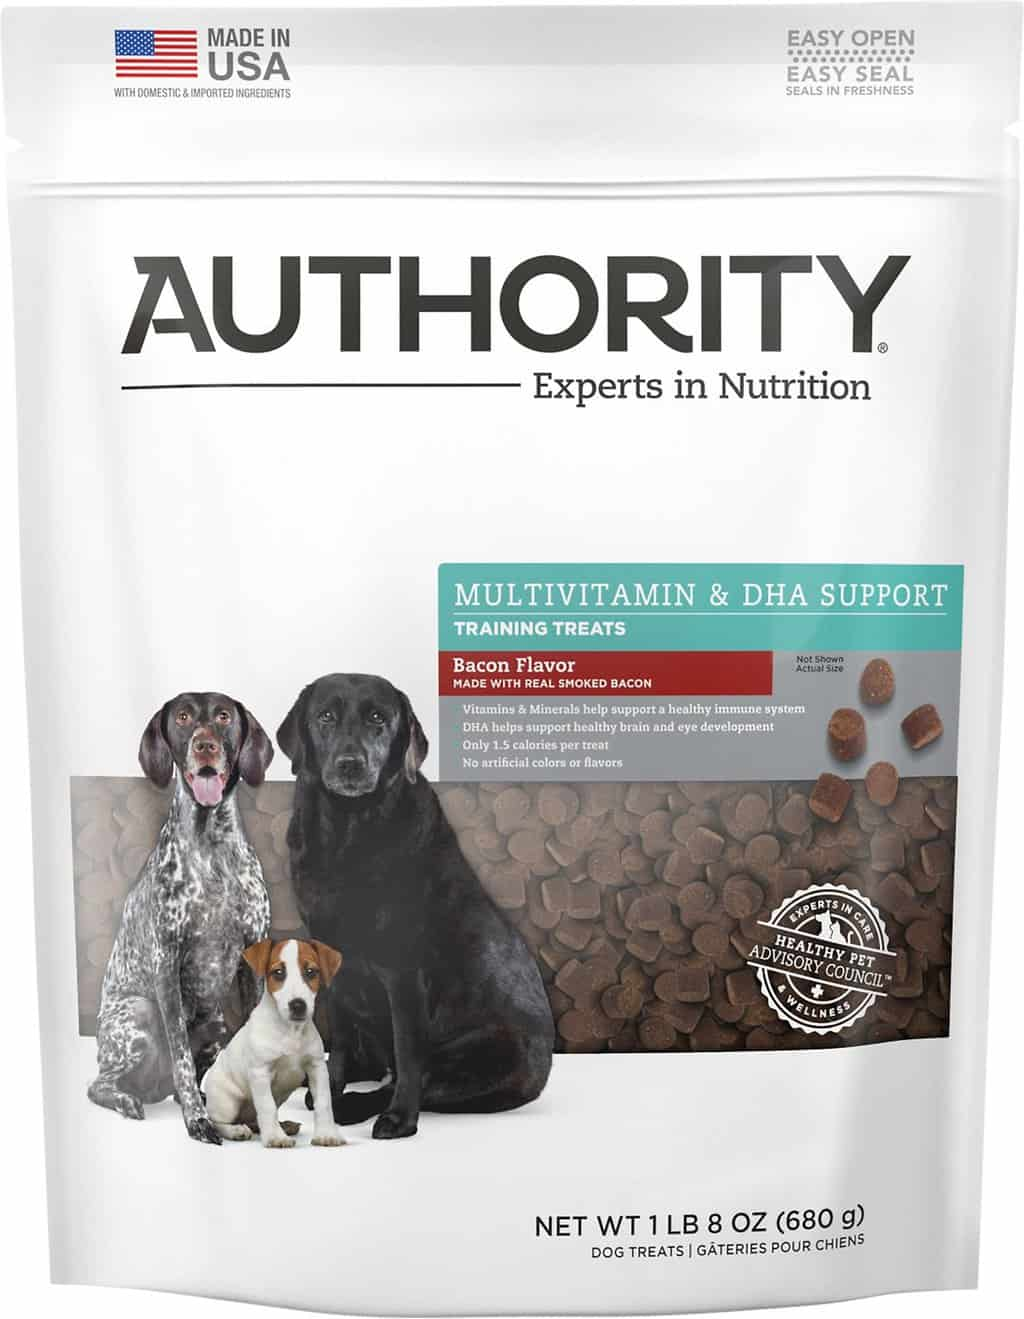 Authority Dog Food Coupons, Reviews and Recalls 2021 19